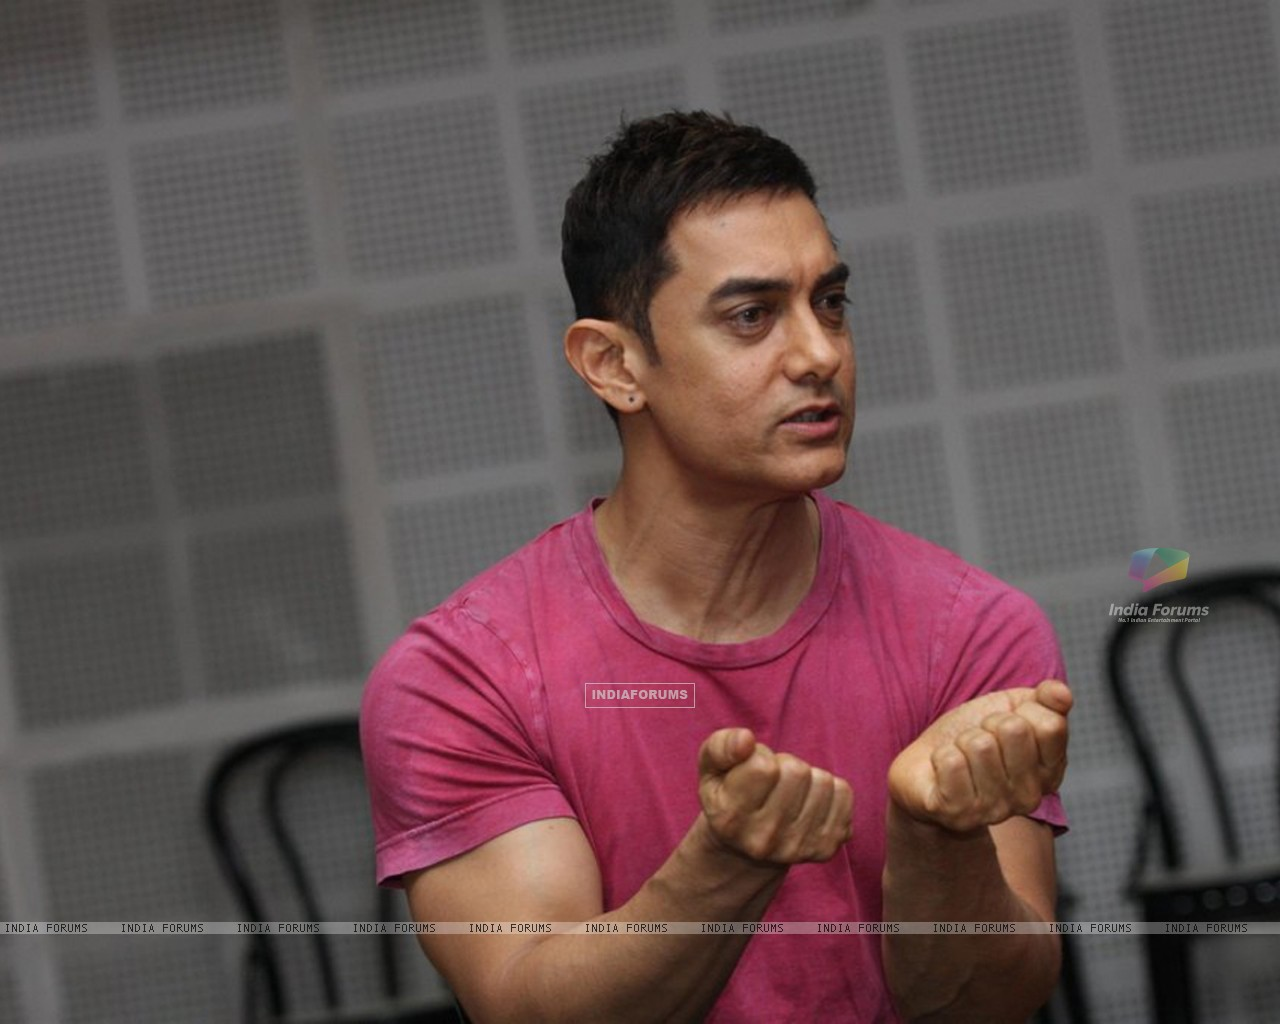 Bollywood actor Aamir Khan at SMJ press conference in Yashraj Studio. . (212224) size:1280x1024